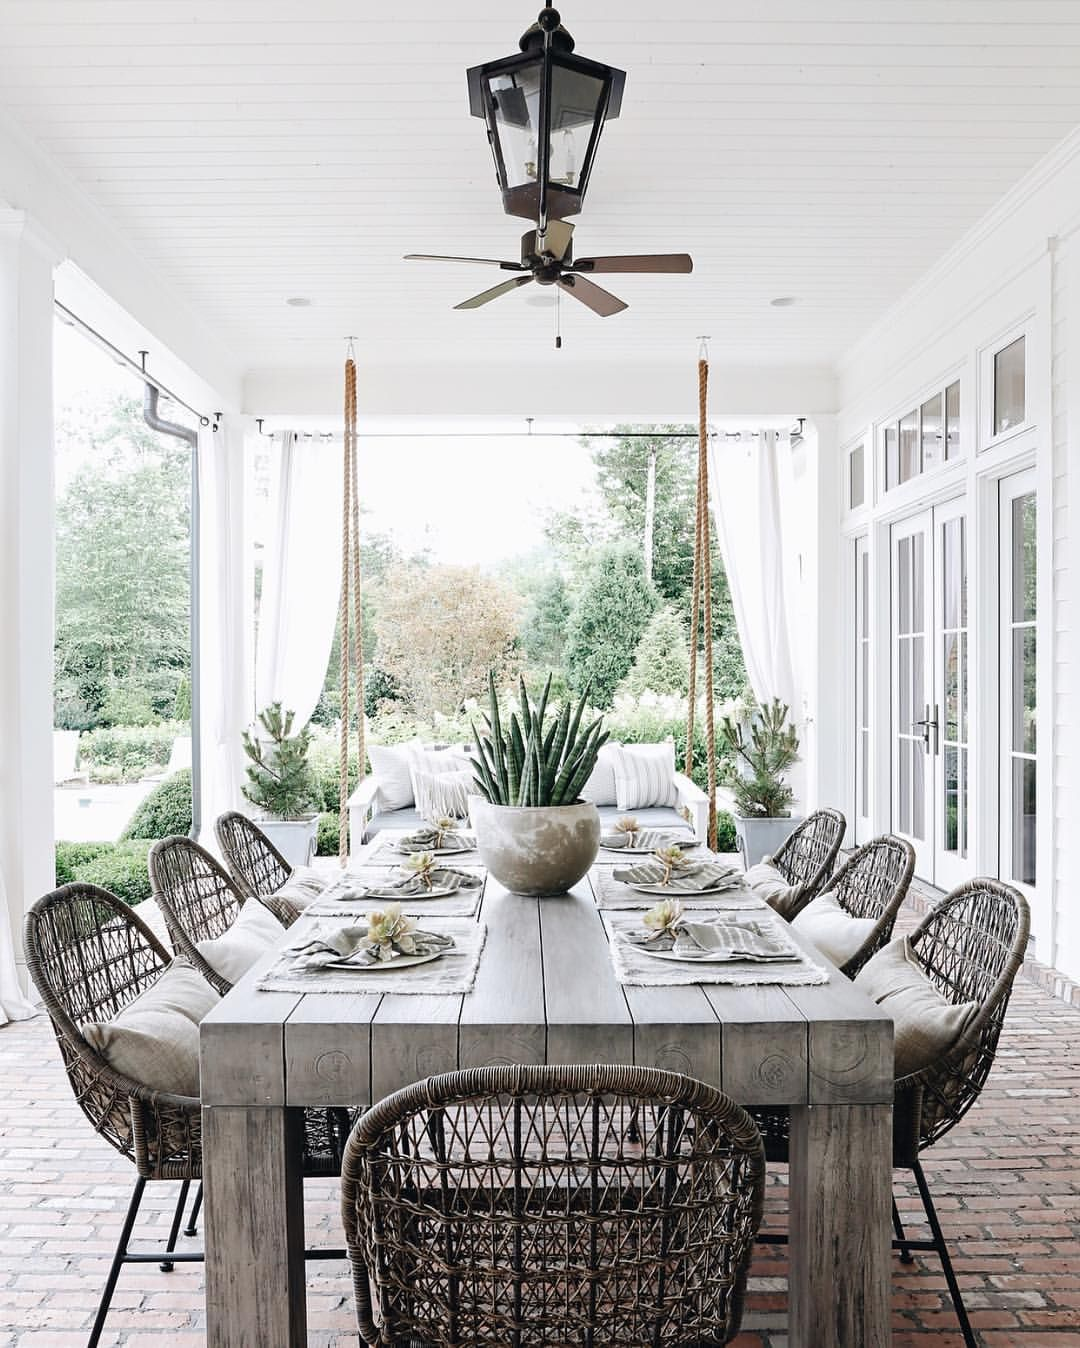 Our Friend April Does It Again With This Stunning Outdoor Dining Space Eyeing All The Small Det Outdoor Dining Spaces Outdoor Dining Room Outdoor Dining Table